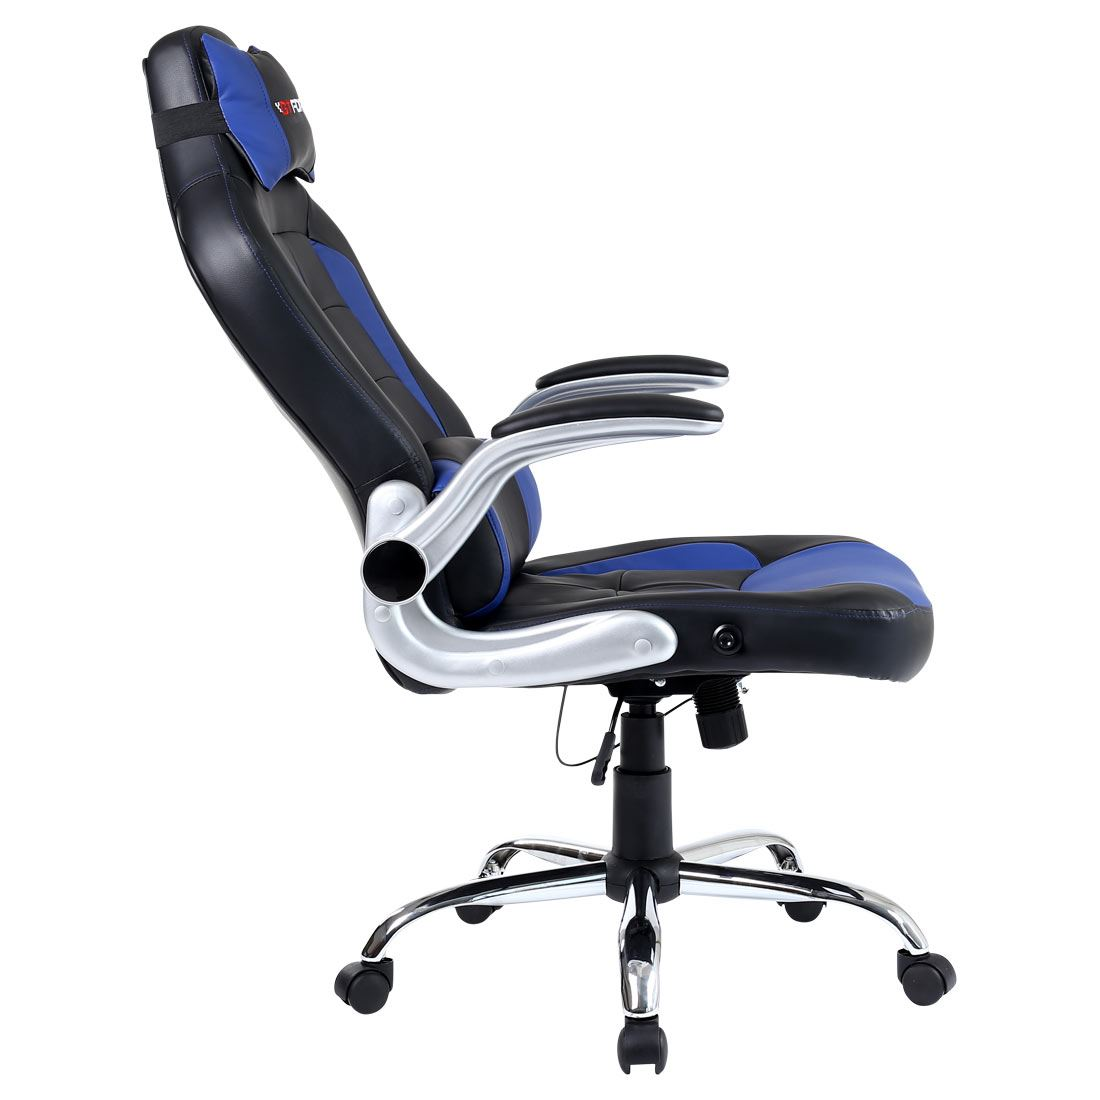 reclining gaming chair folding lounge chairs outdoor gtforce blaze blue leather sports racing office